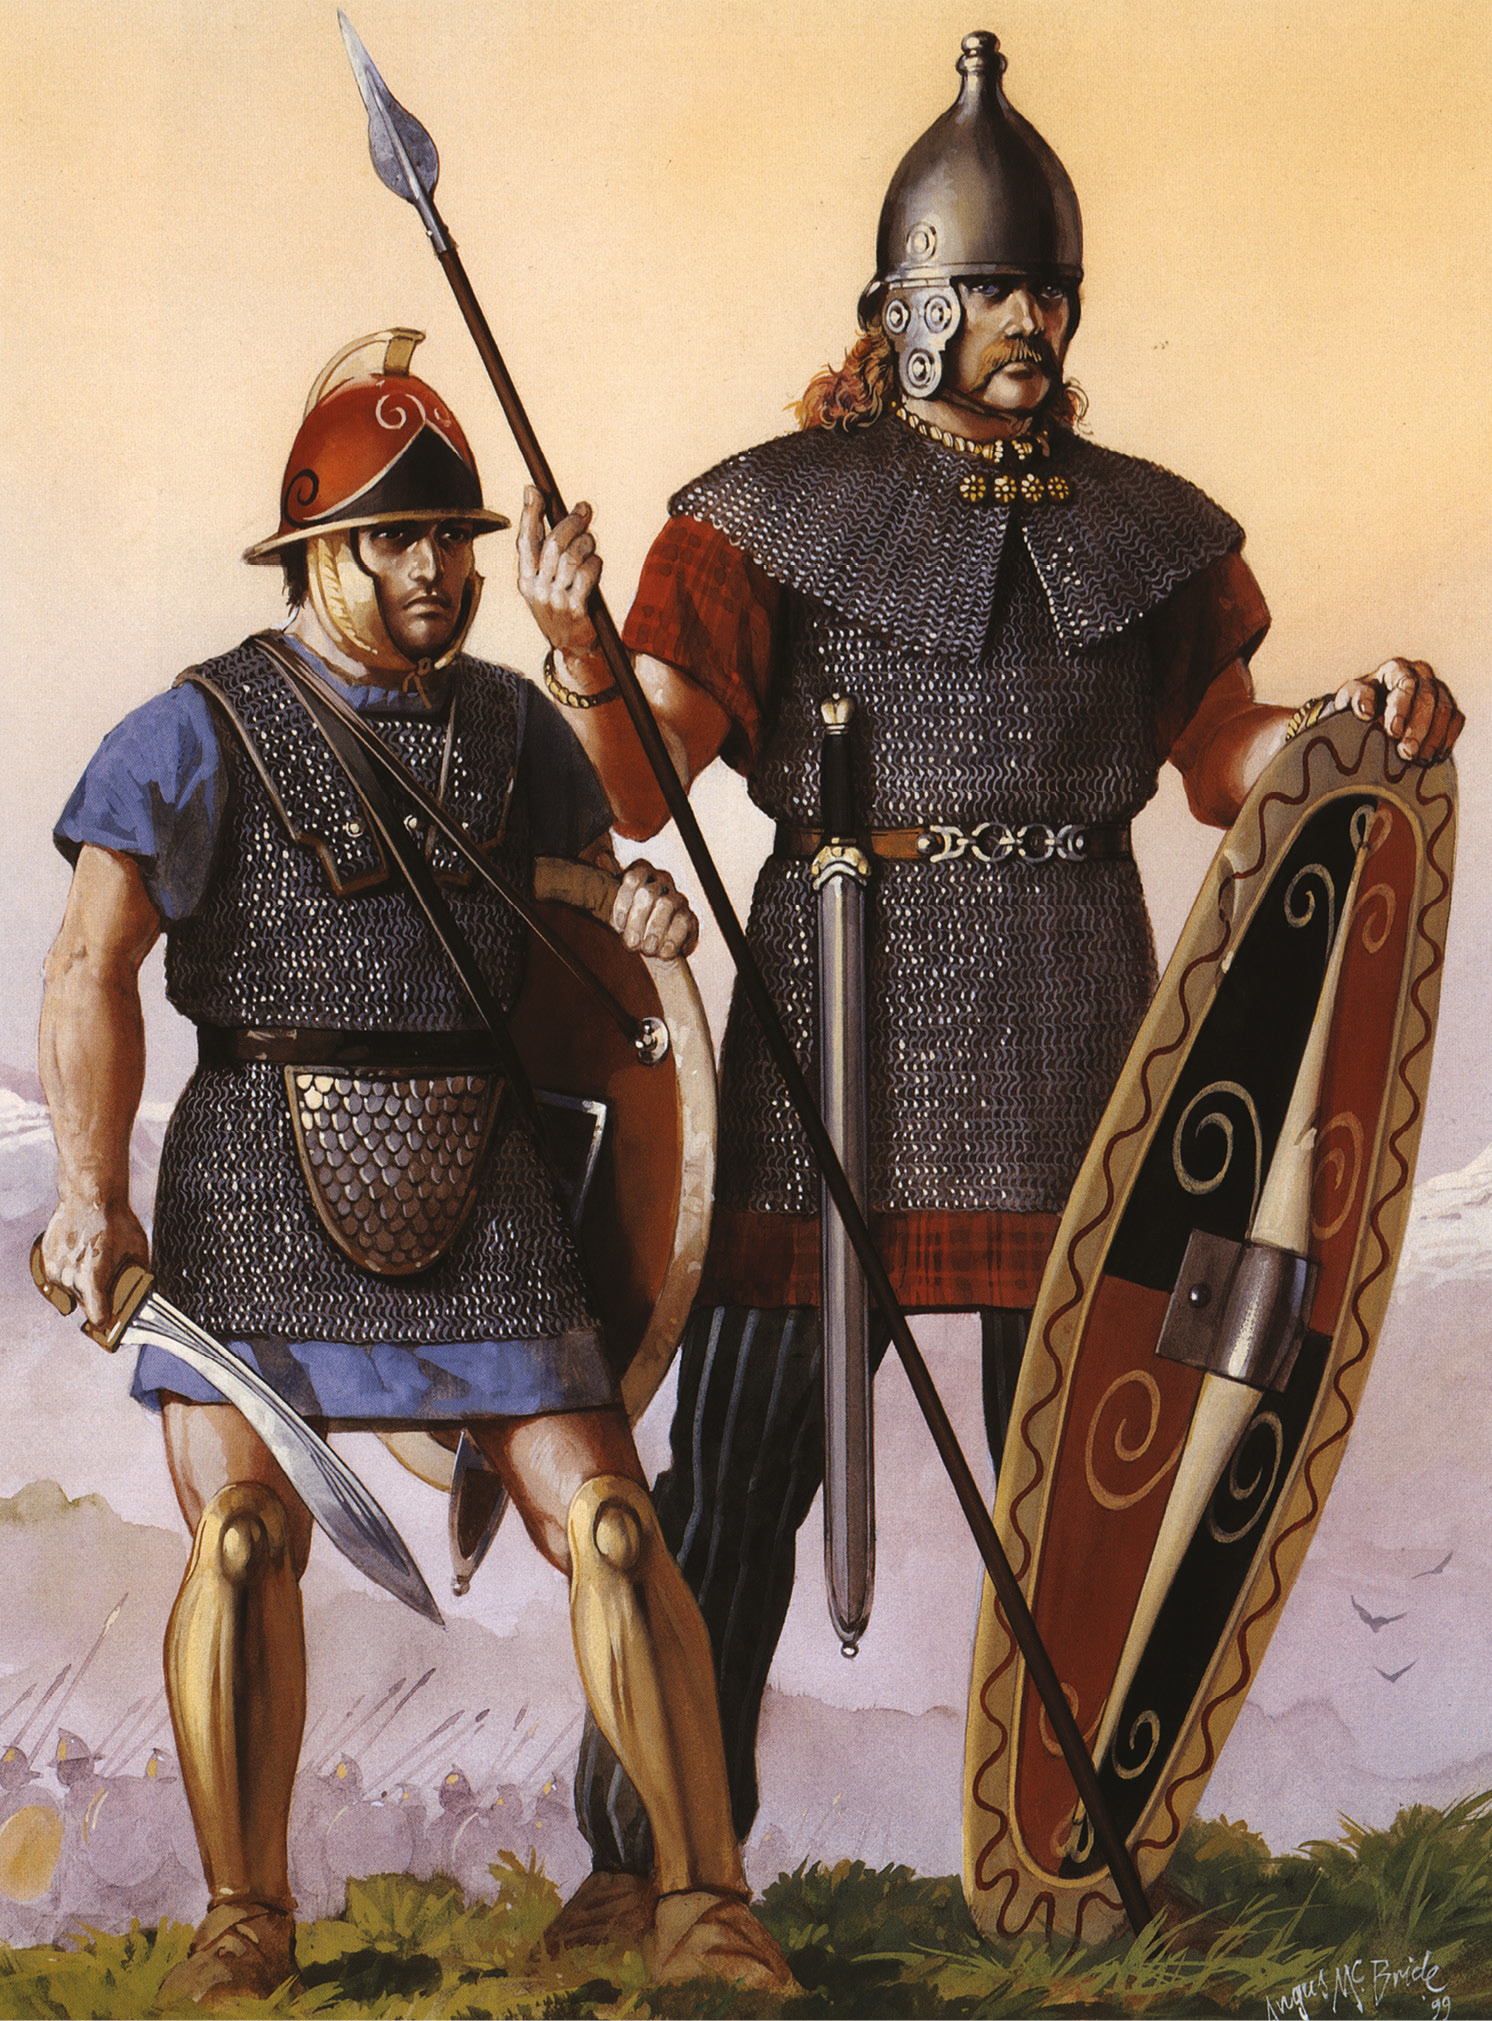 LEFT Hannibal's army was a rich ethnic mix, though virtually all his men are likely to have been heavily armoured, often wearing captured Roman kit. This reconstruction shows a Celtiberian on the left, a Gaul on the right.